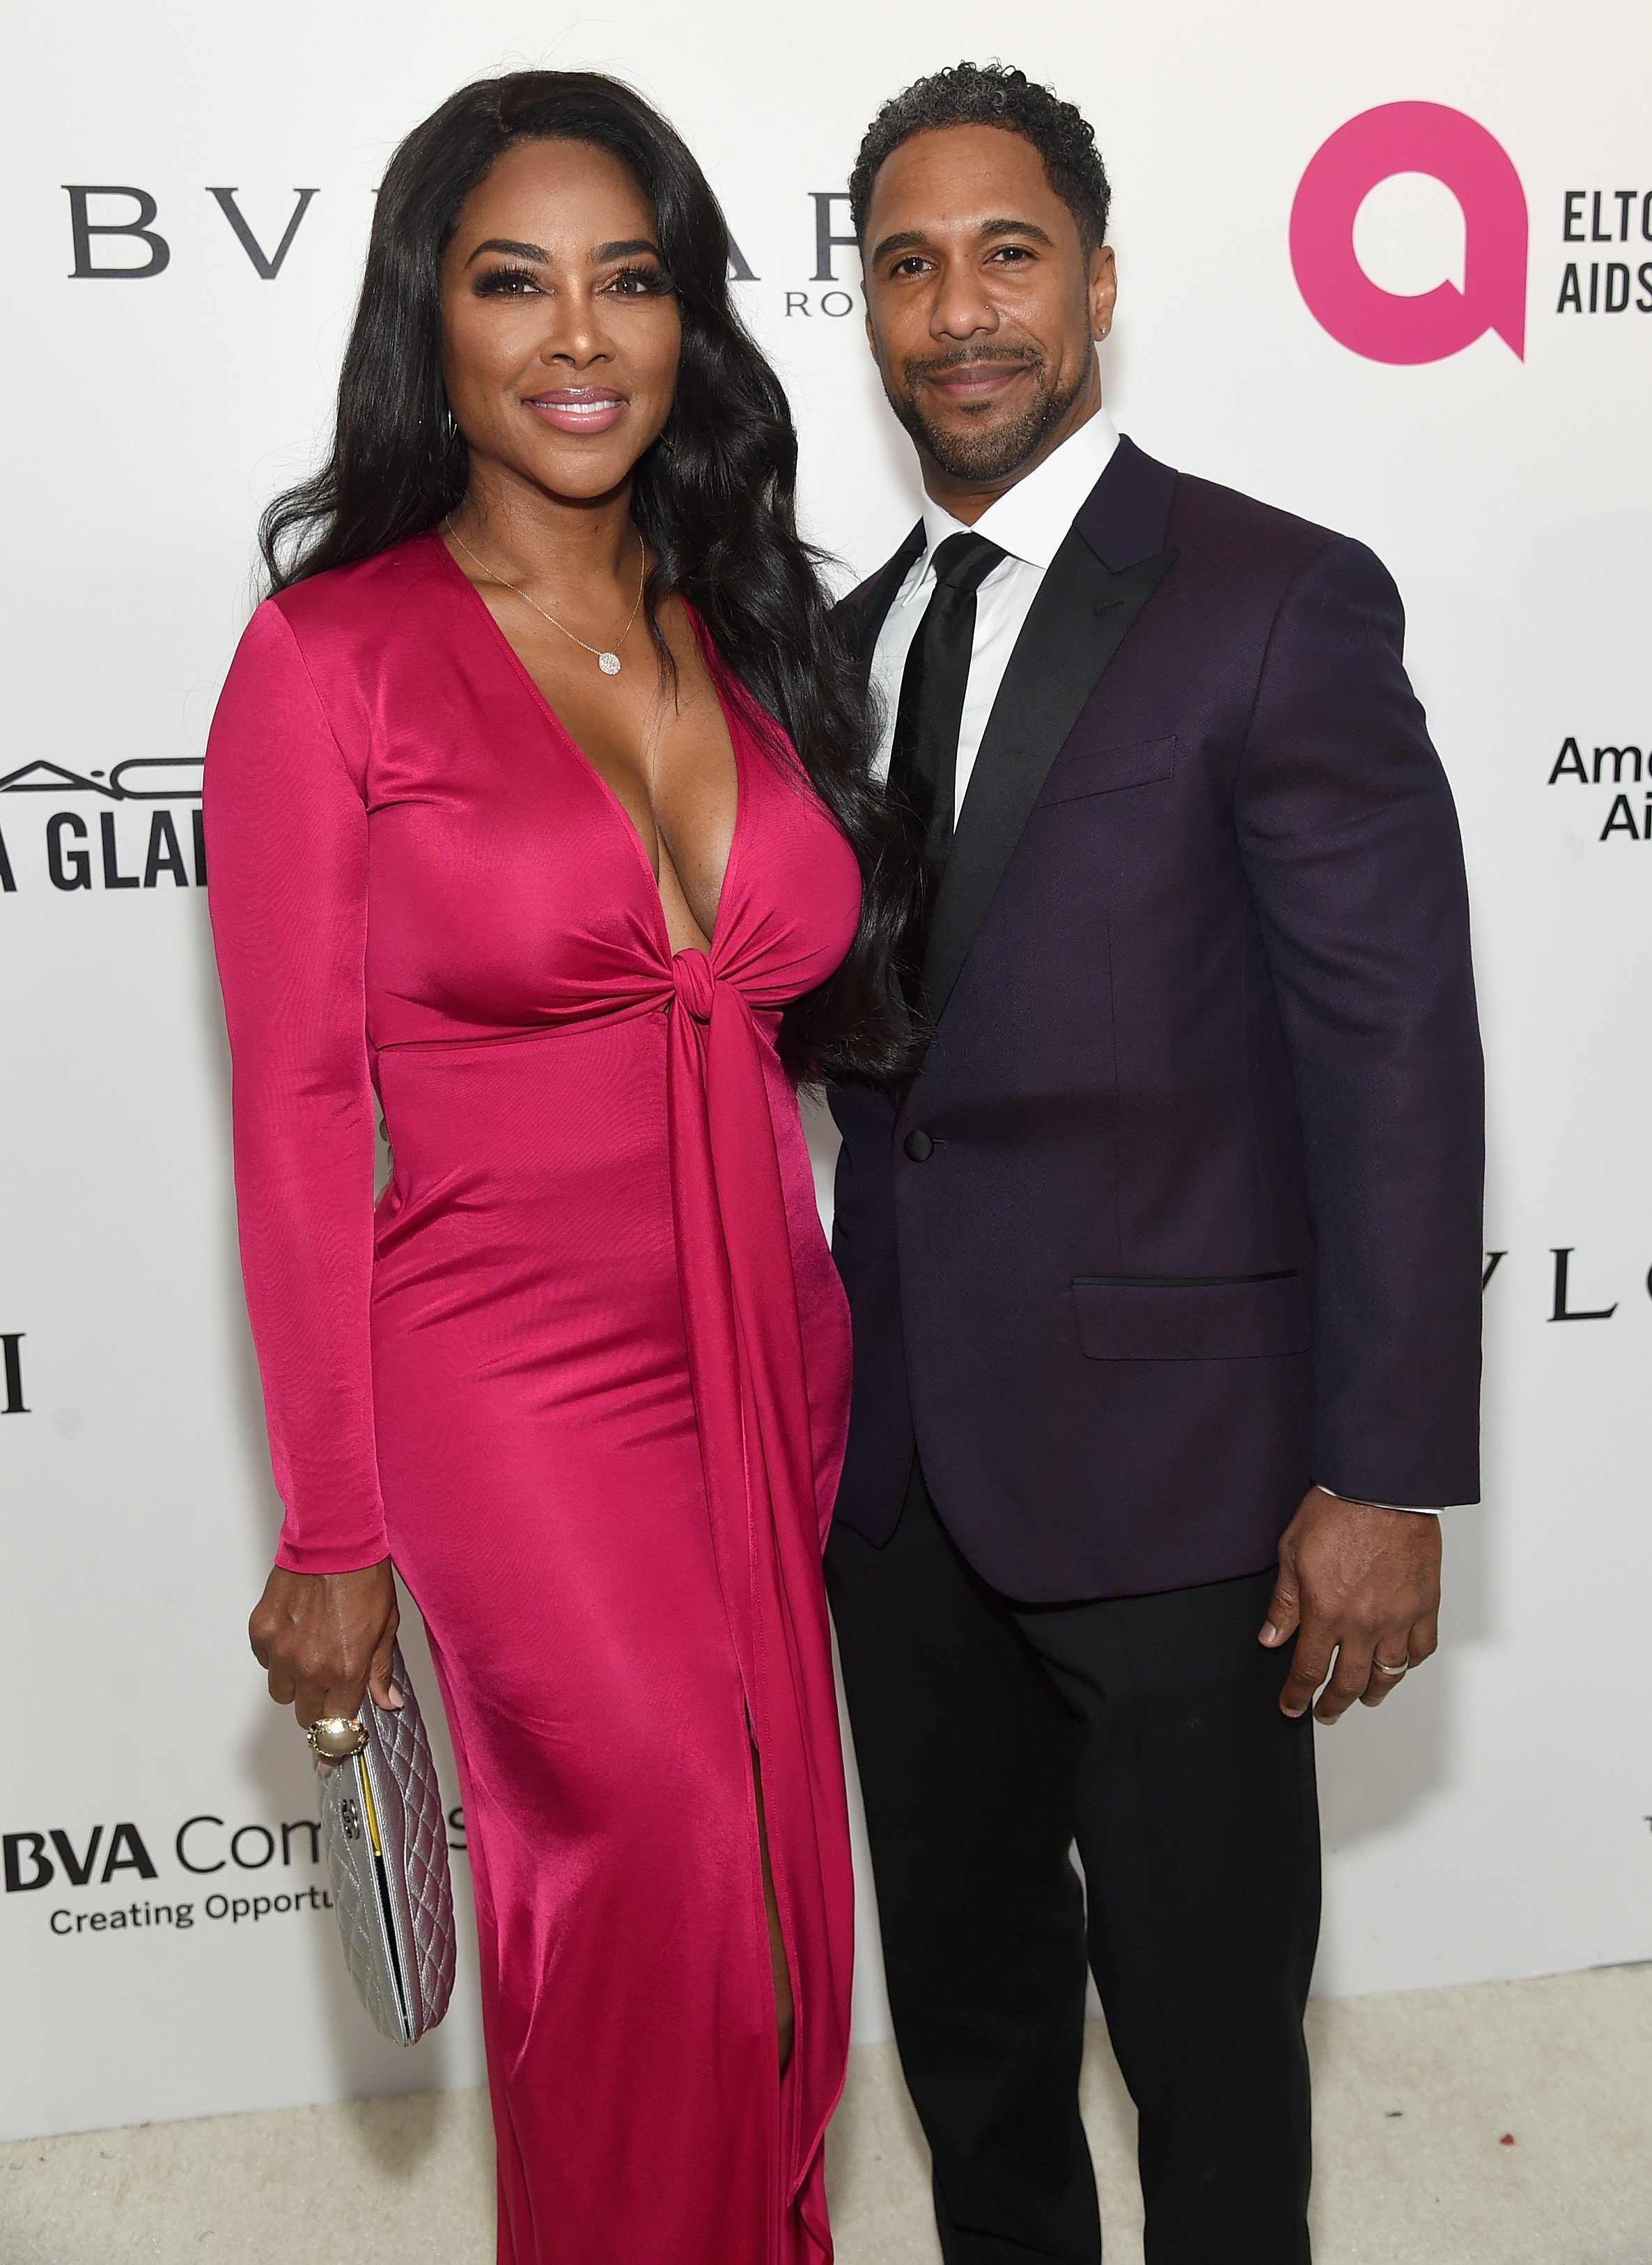 Kenya Moore & Marc Daly at the Elton John AIDS Foundation's Academy Awards Viewing Party in California on Mar. 4, 2018   Photo: Getty Images